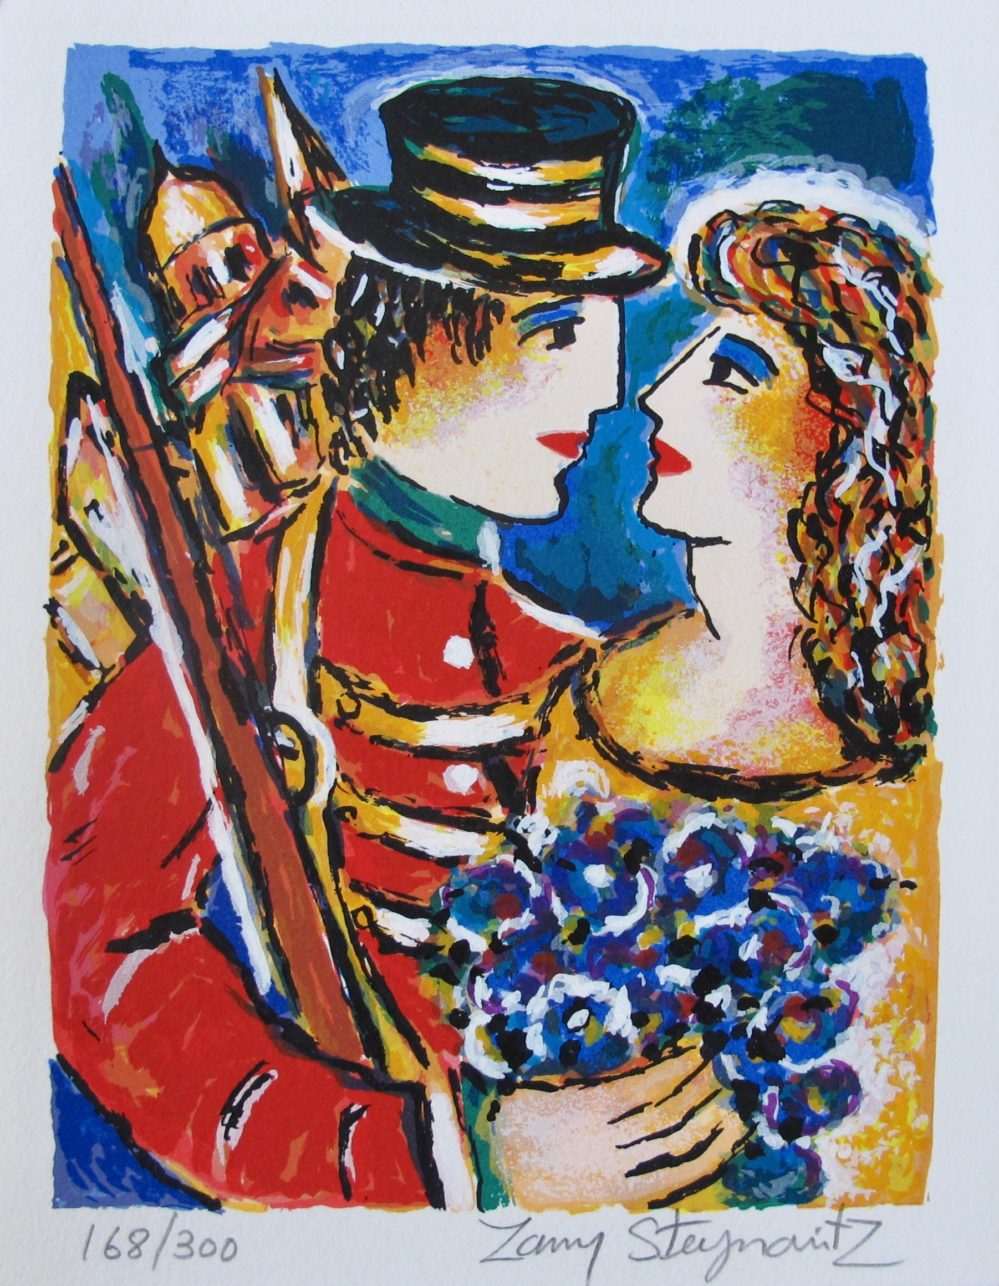 Zamy Steynovitz LOVERS BOUQUET Hand Signed Lithograph